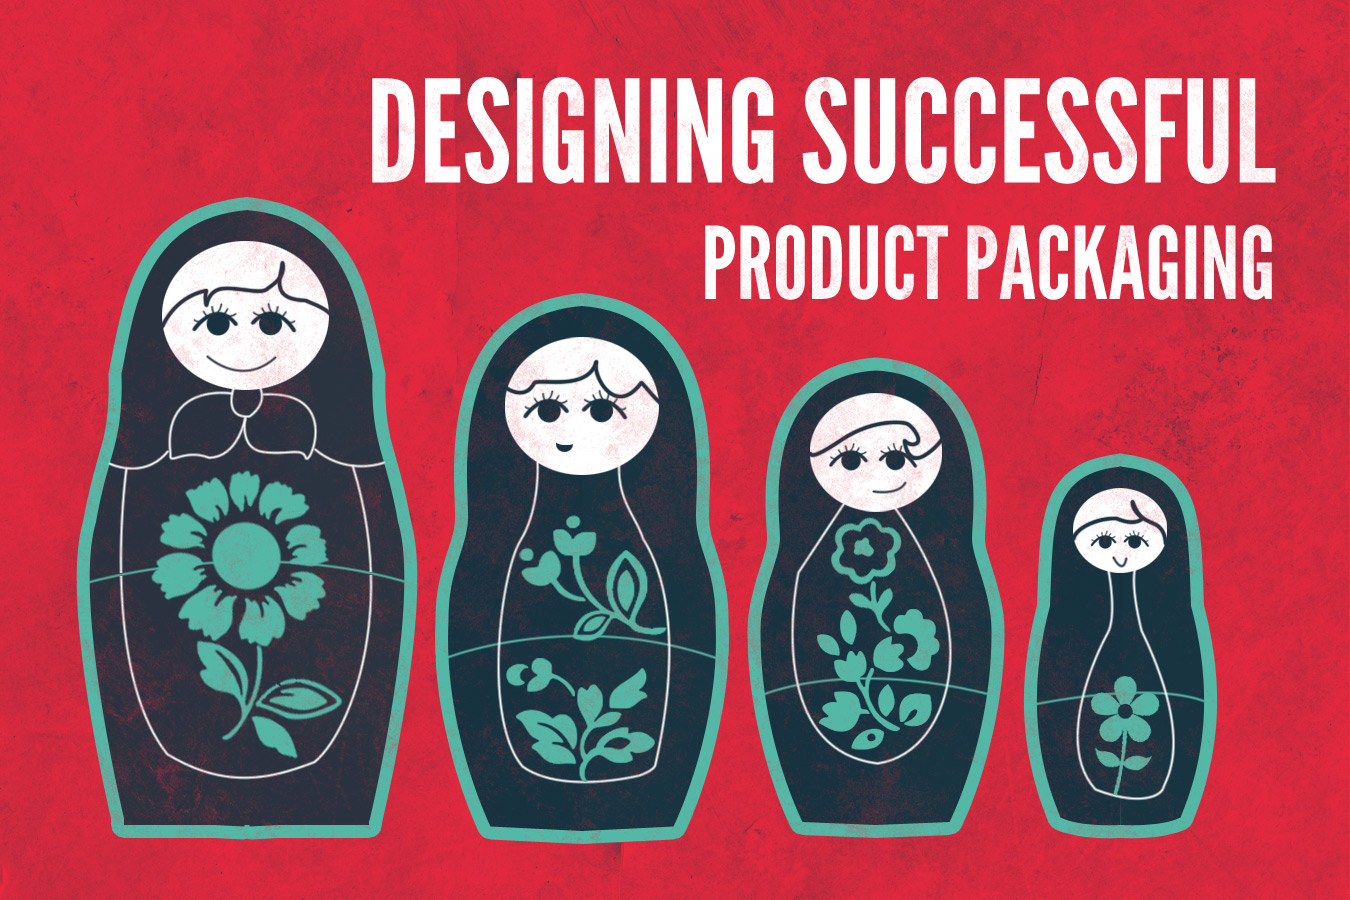 Designing Successful Product Packaging